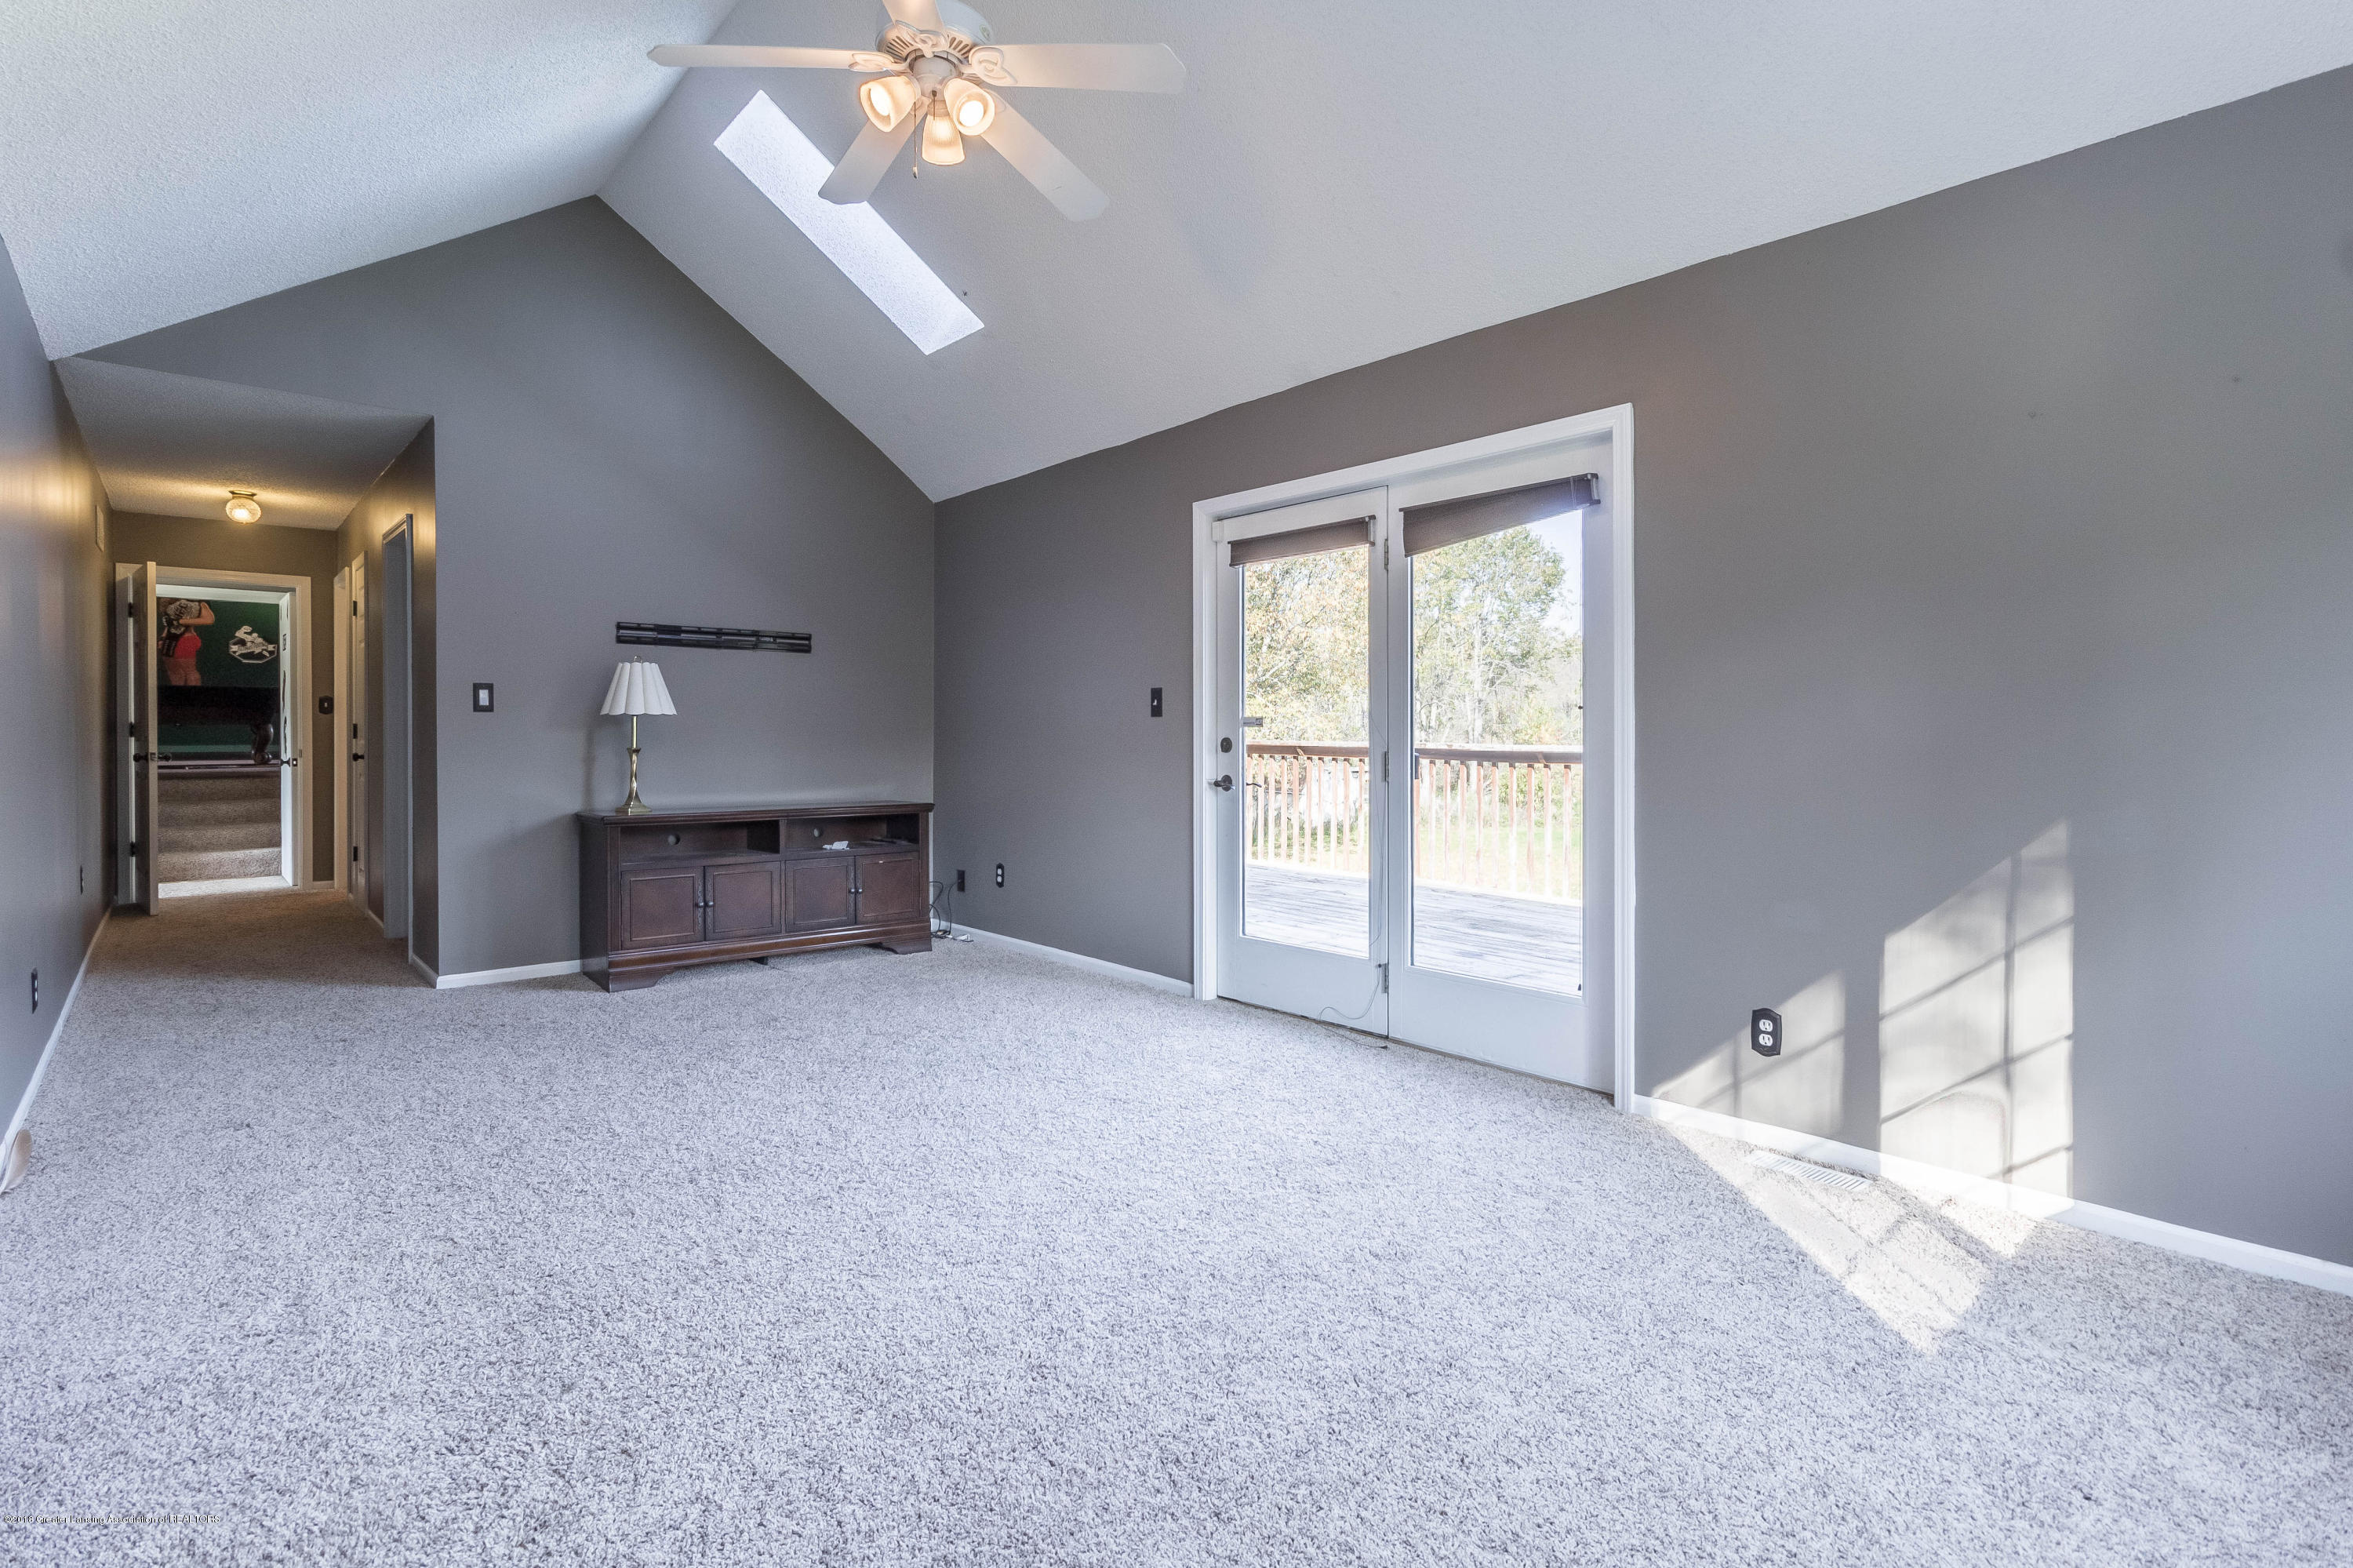 1656 W 5 Point Hwy - Master bedroom - 20